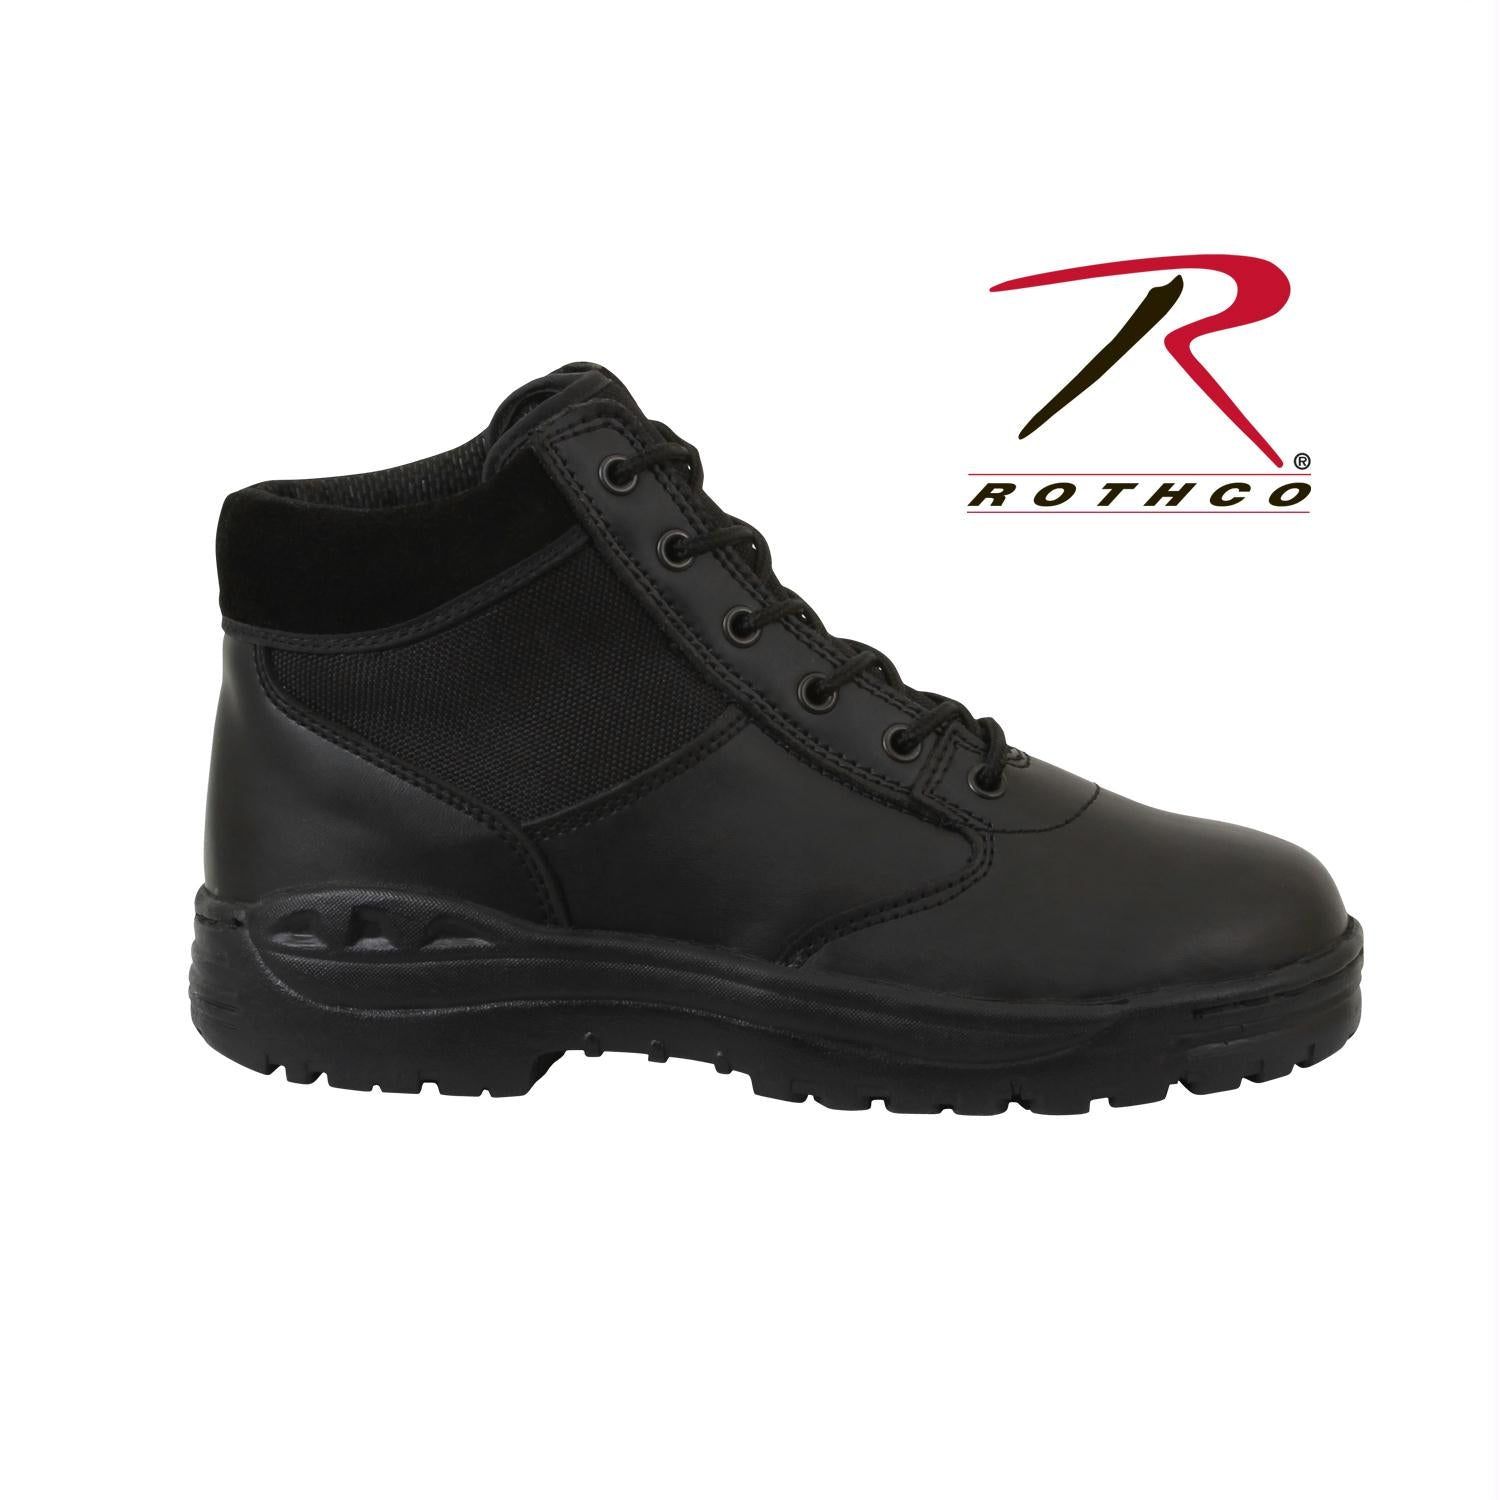 Rothco Forced Entry Security Boot / 6'' - 15